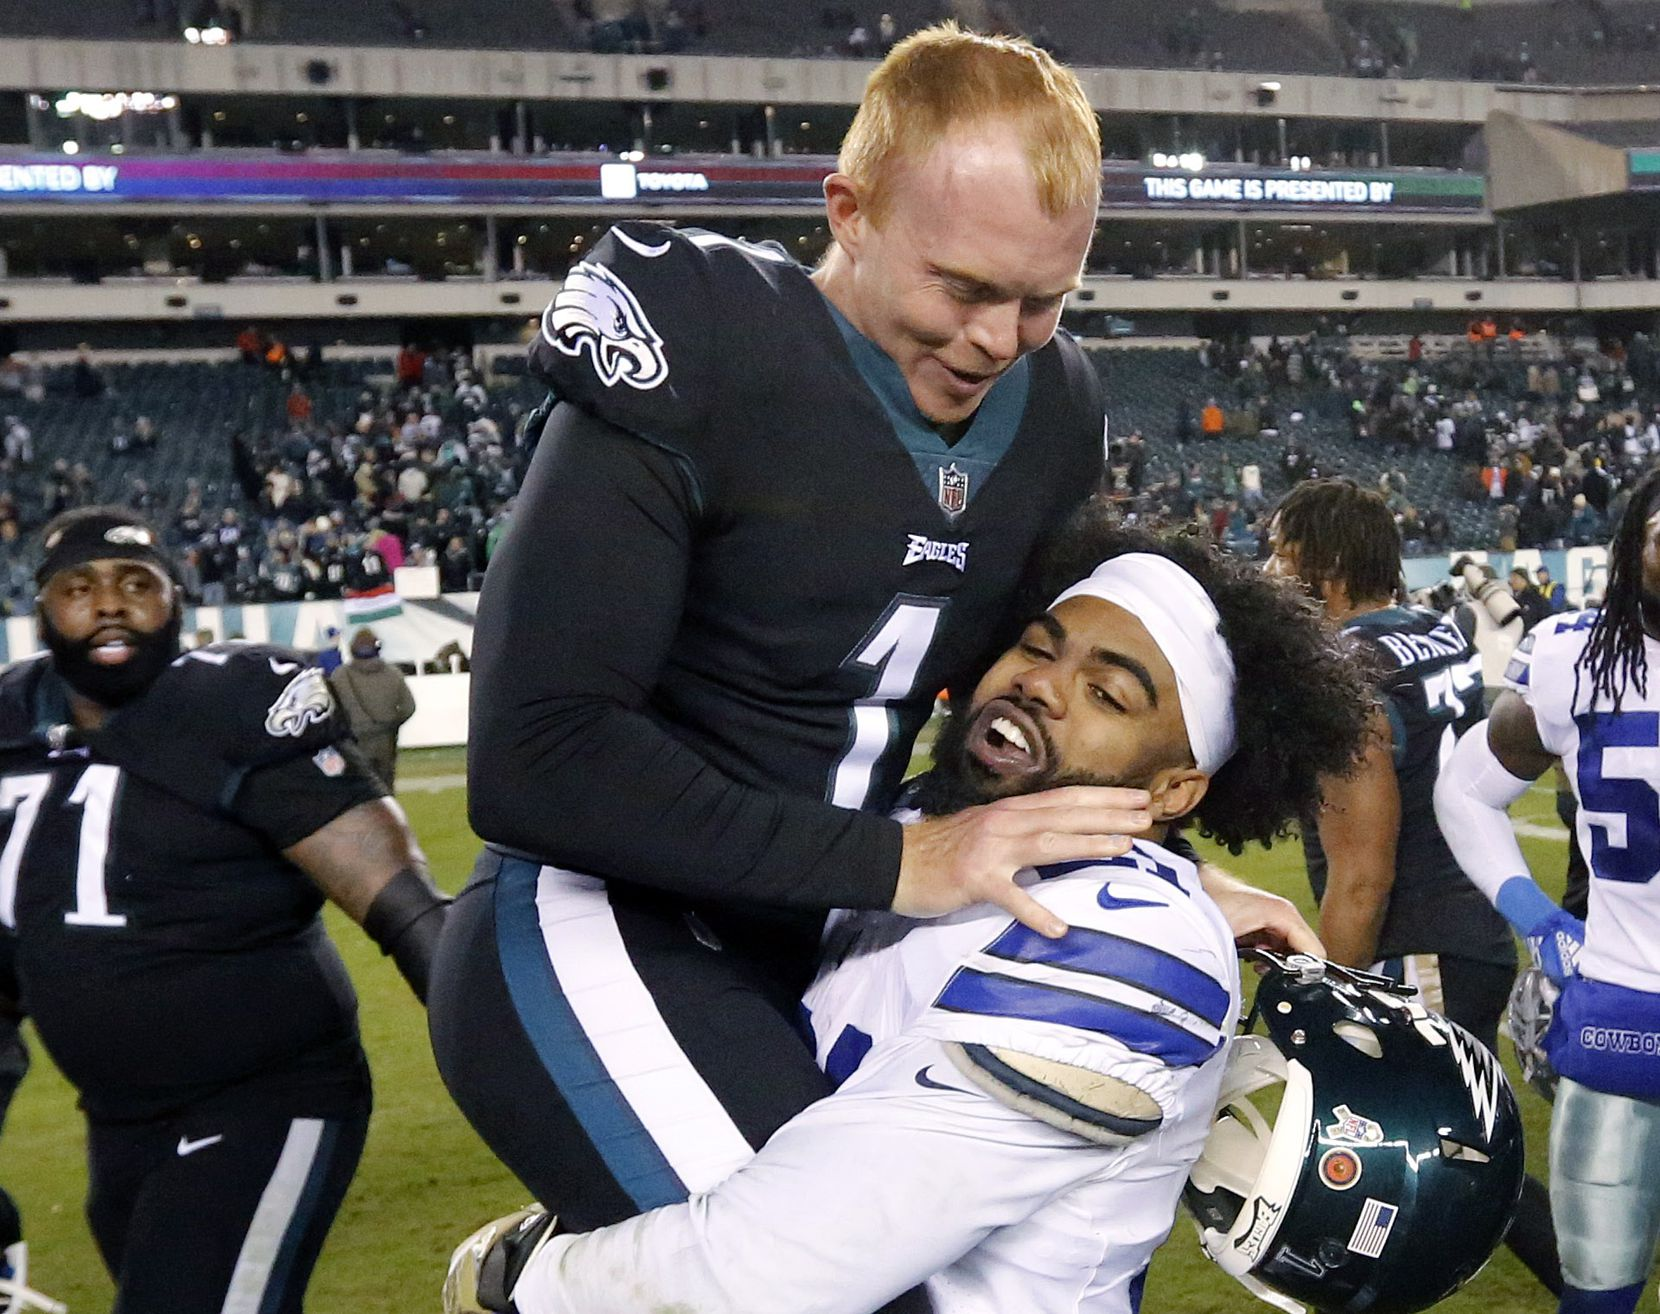 FILE - Dallas Cowboys running back Ezekiel Elliott (21) picks up Philadelphia Eagles punter and former Ohio St teammate Cameron Johnston (1) following their 27-20 win over the Eagles at Lincoln Financial Field in Philadelphia, Pennsylvania, Sunday, November 11, 2018. (Tom Fox/The Dallas Morning News)